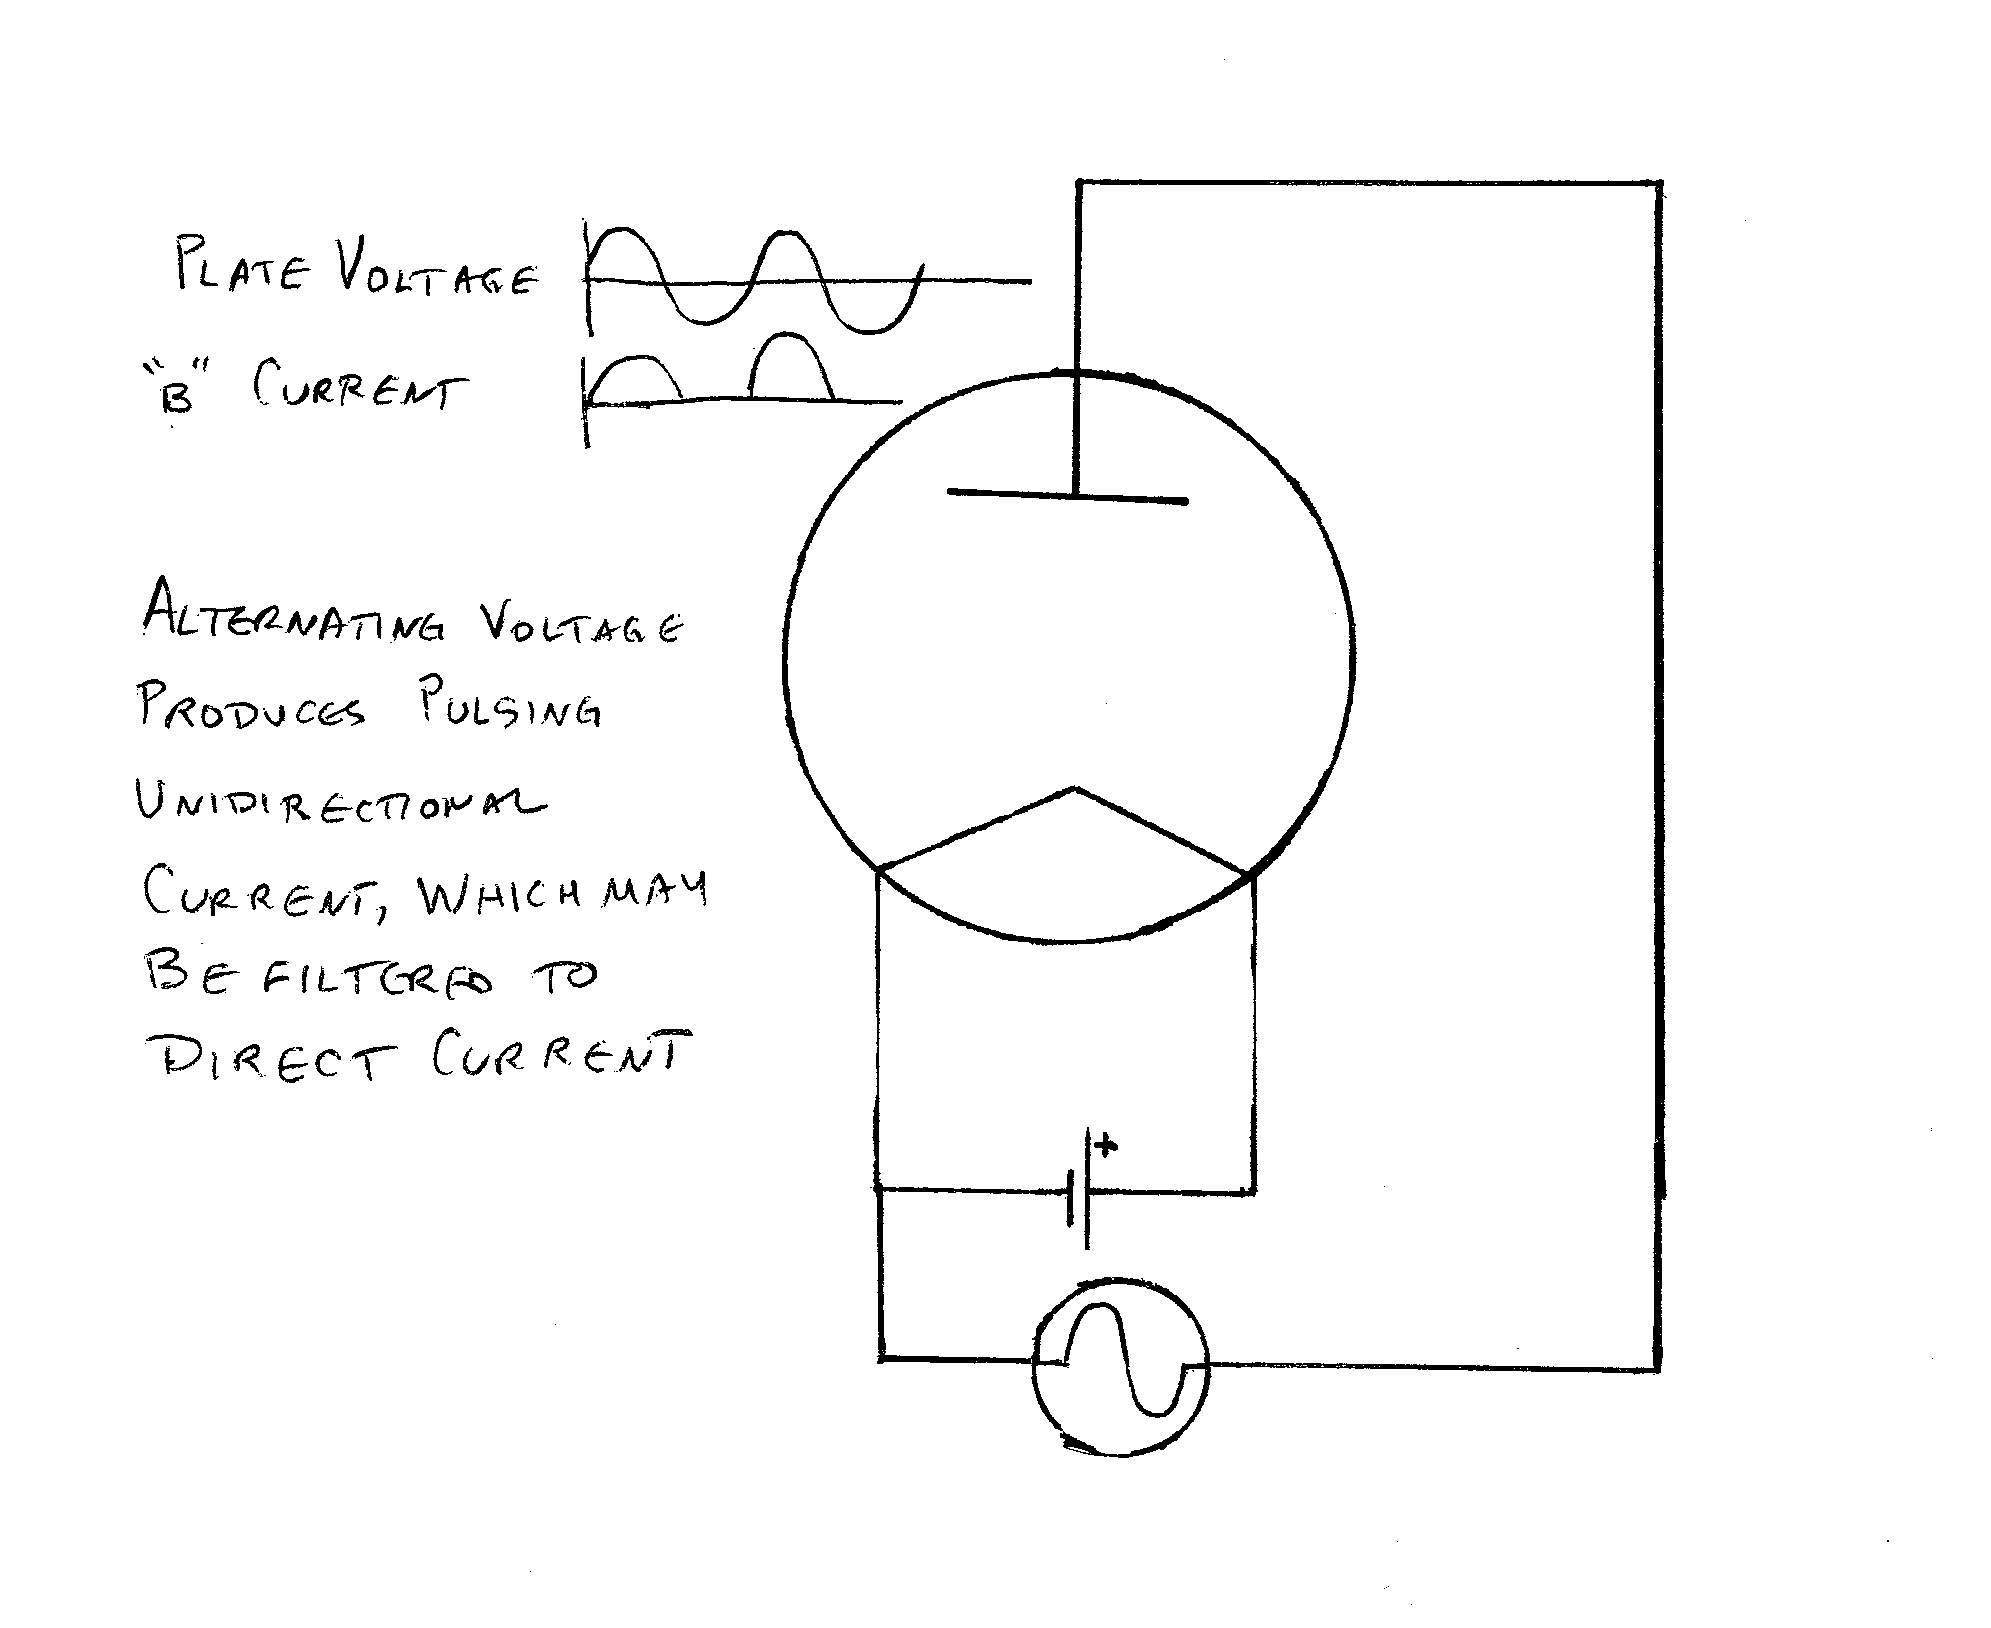 Basic Vacuum Tube Theory Introduction To Electronic Emission Tubes And Power Supplies Rectification